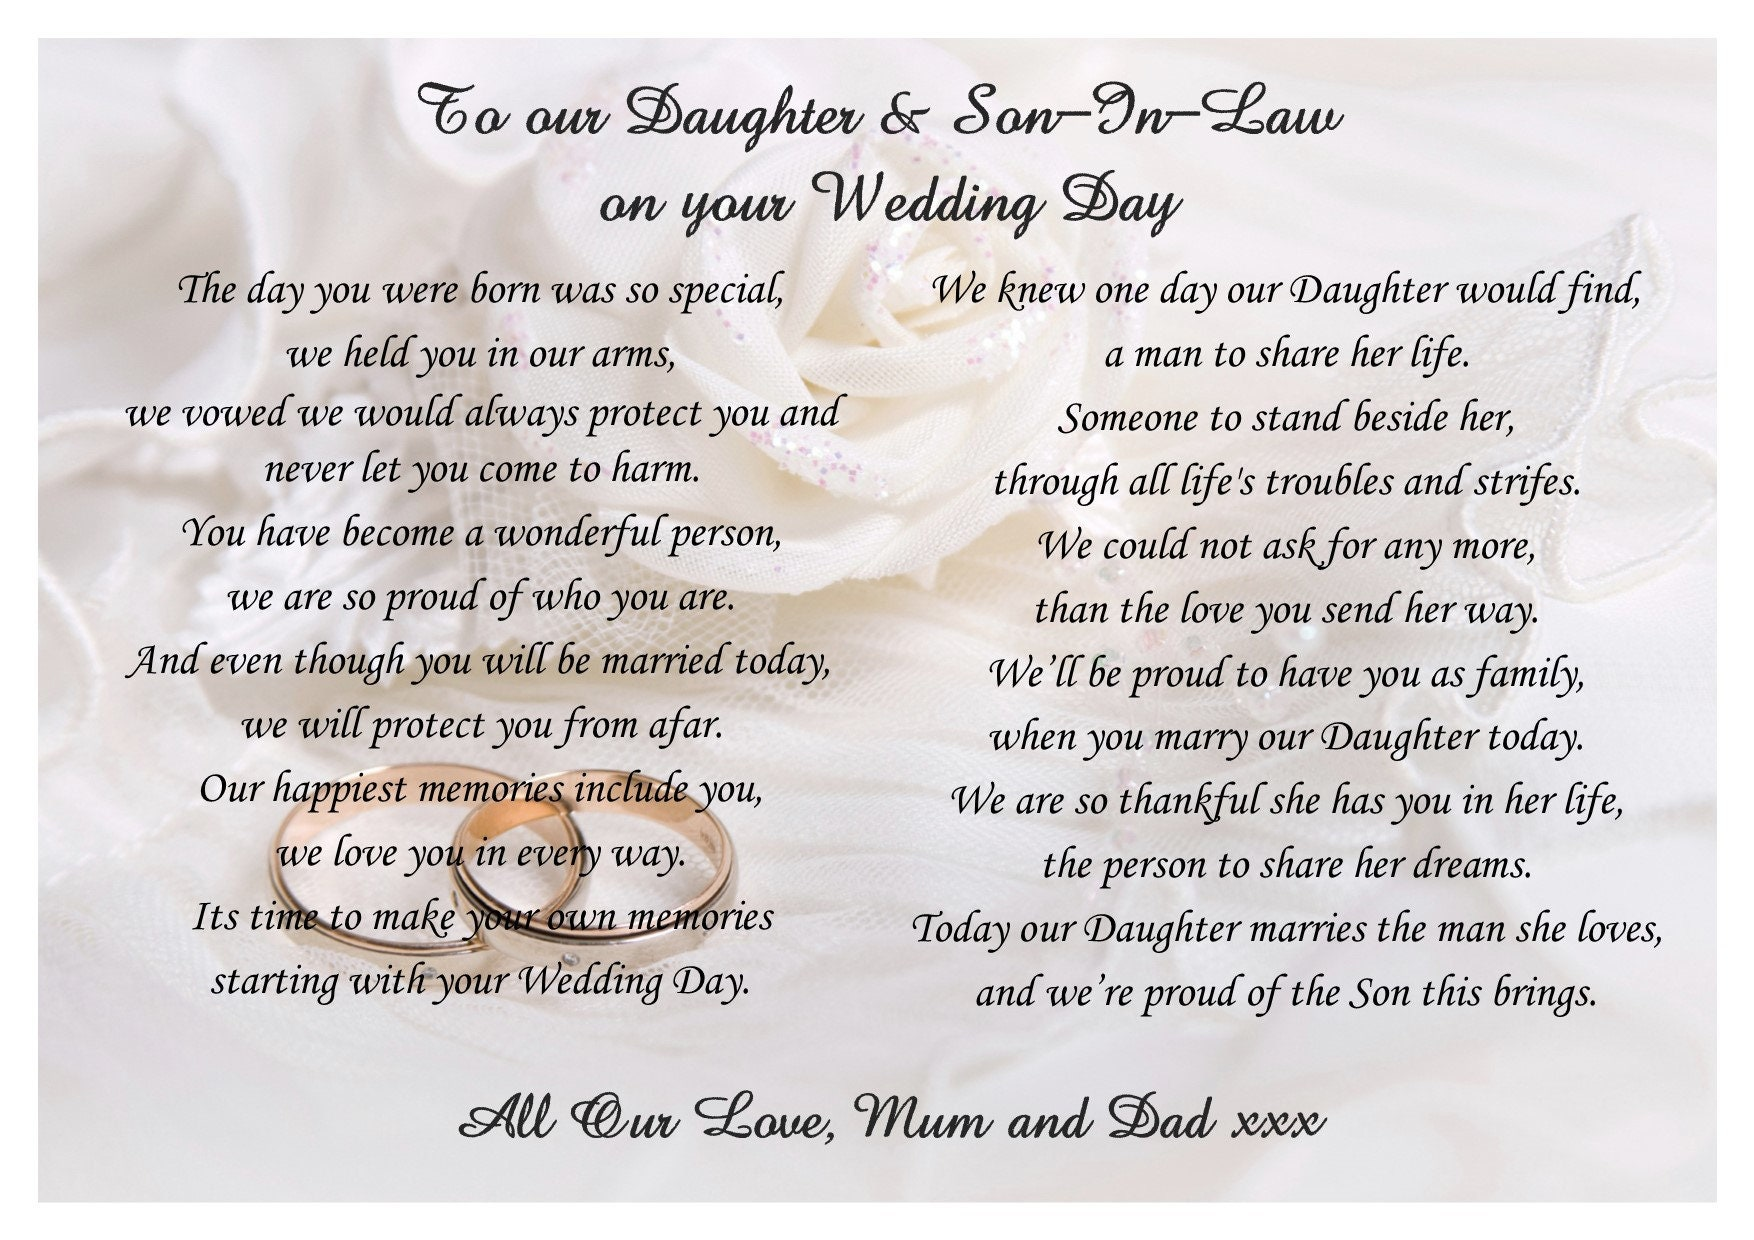 Poem to Daughter and Son in law on your wedding day from Mum | Etsy